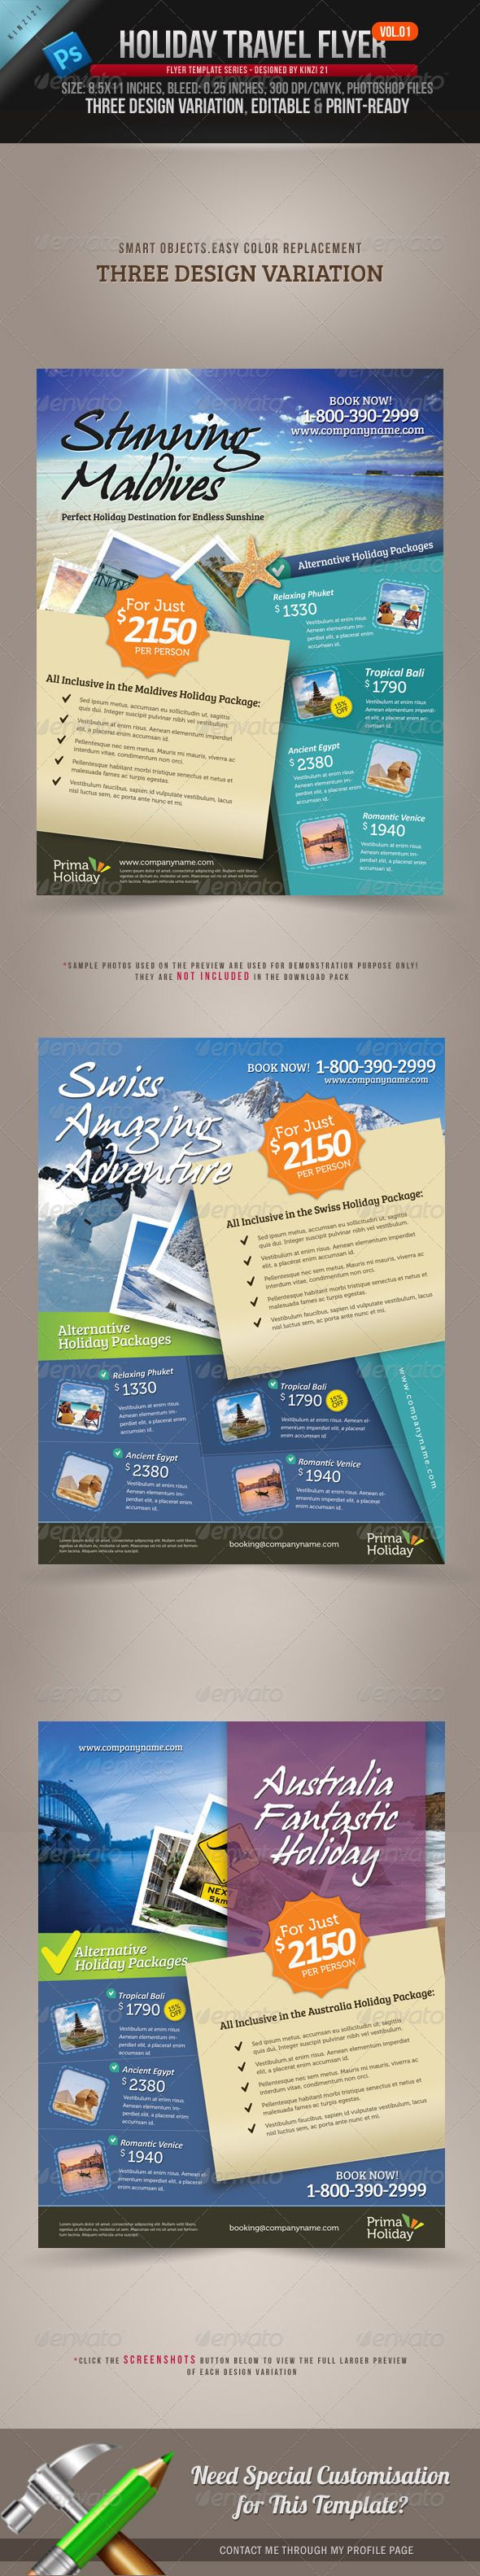 17 best images about holidays flyer design holiday travel flyer vol 01 holidays events here